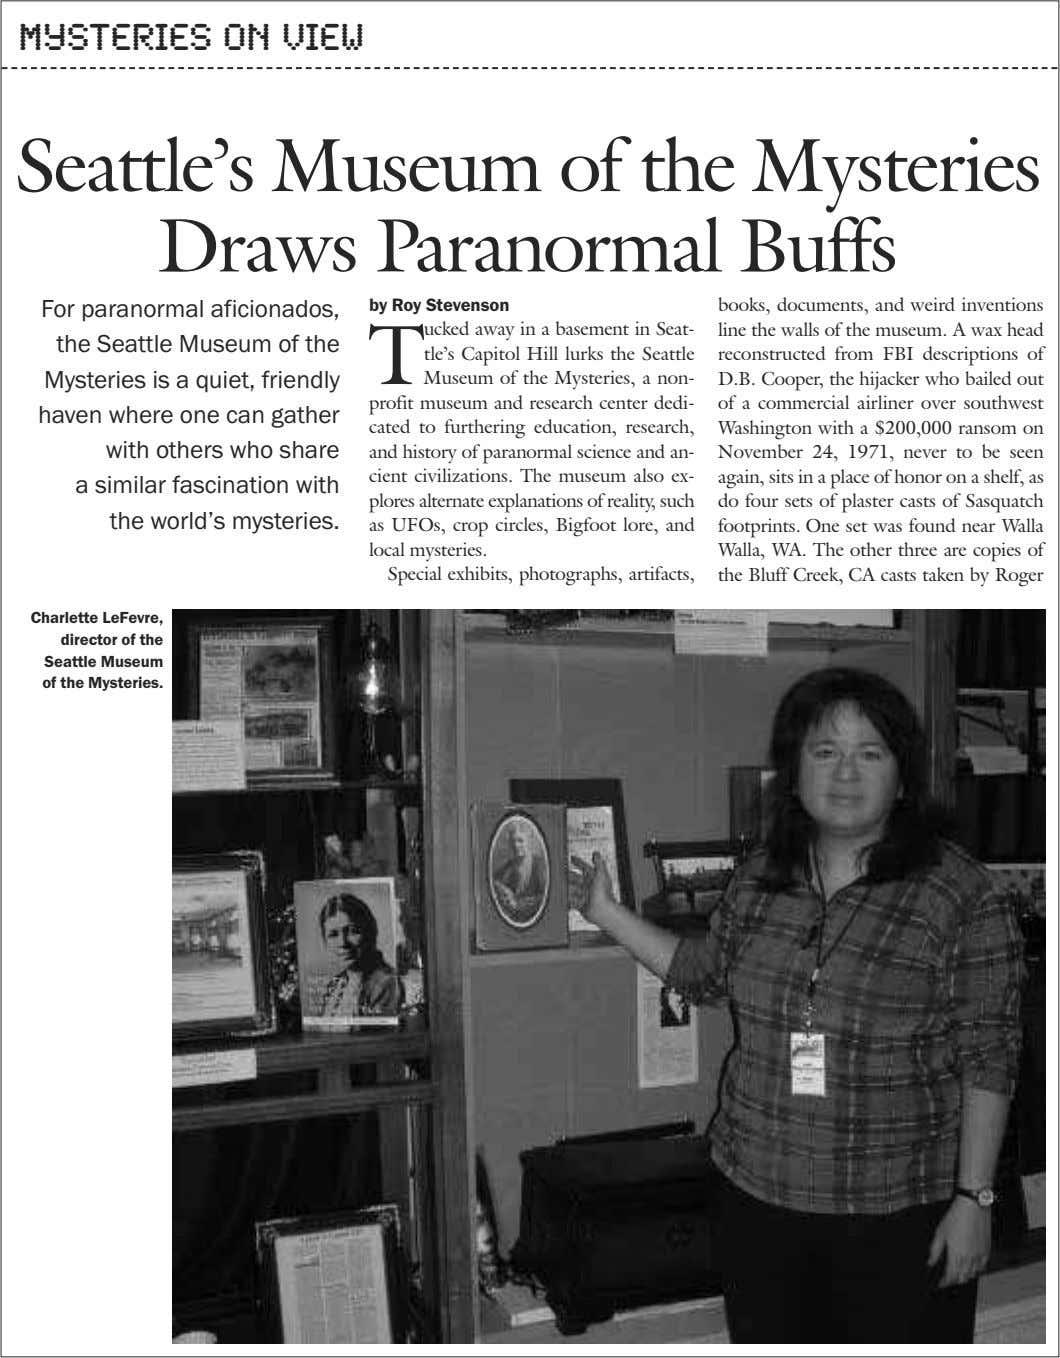 Mysteries on View Seattle's Museum of the Mysteries Draws Paranormal Buffs For paranormal aficionados, the